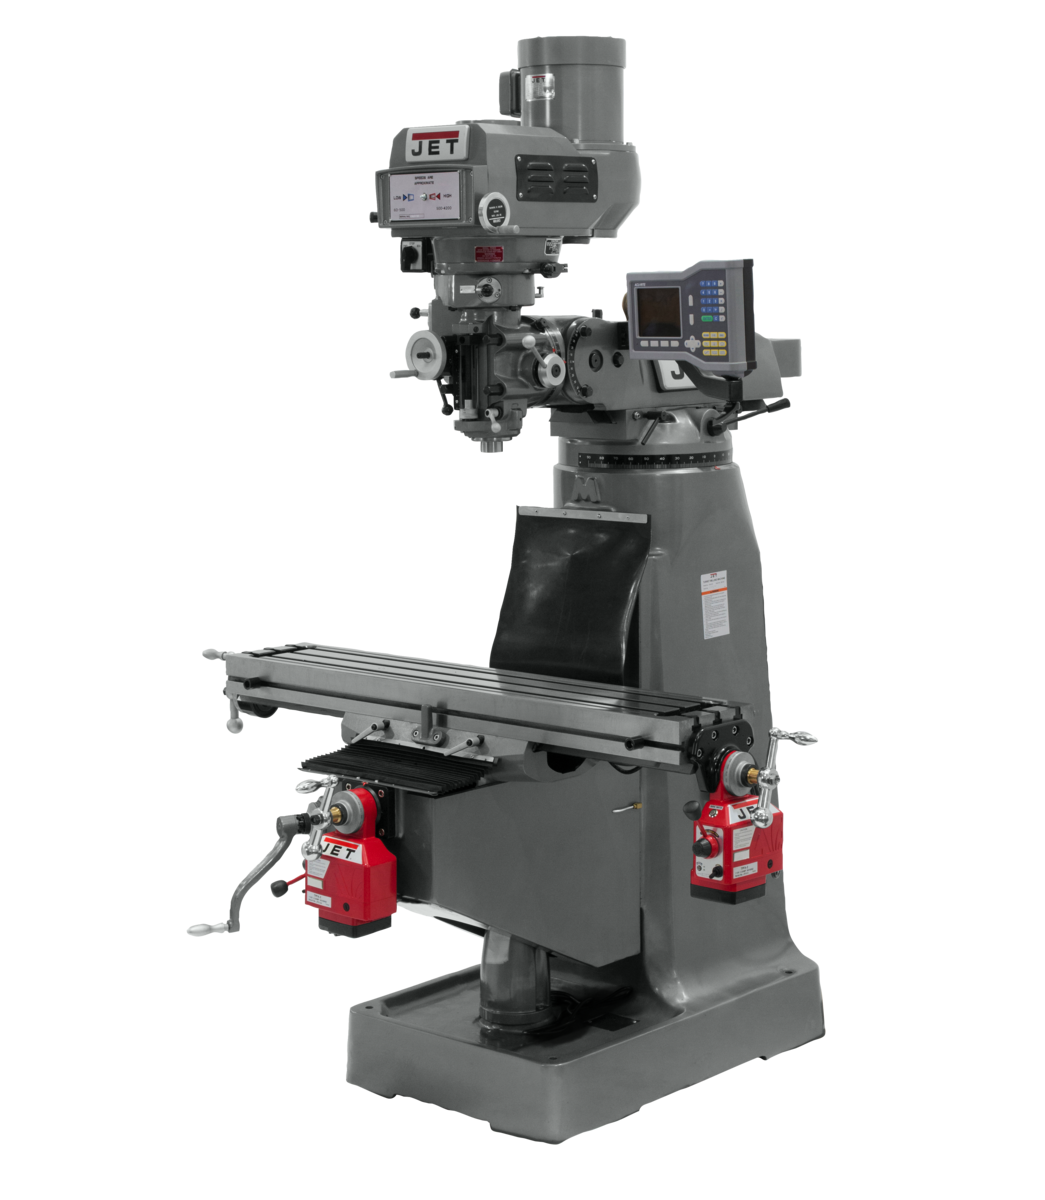 JTM-4VS-1 Mill With 3-Axis ACU-RITE 203 DRO (Knee) With X and Y-Axis Powerfeeds